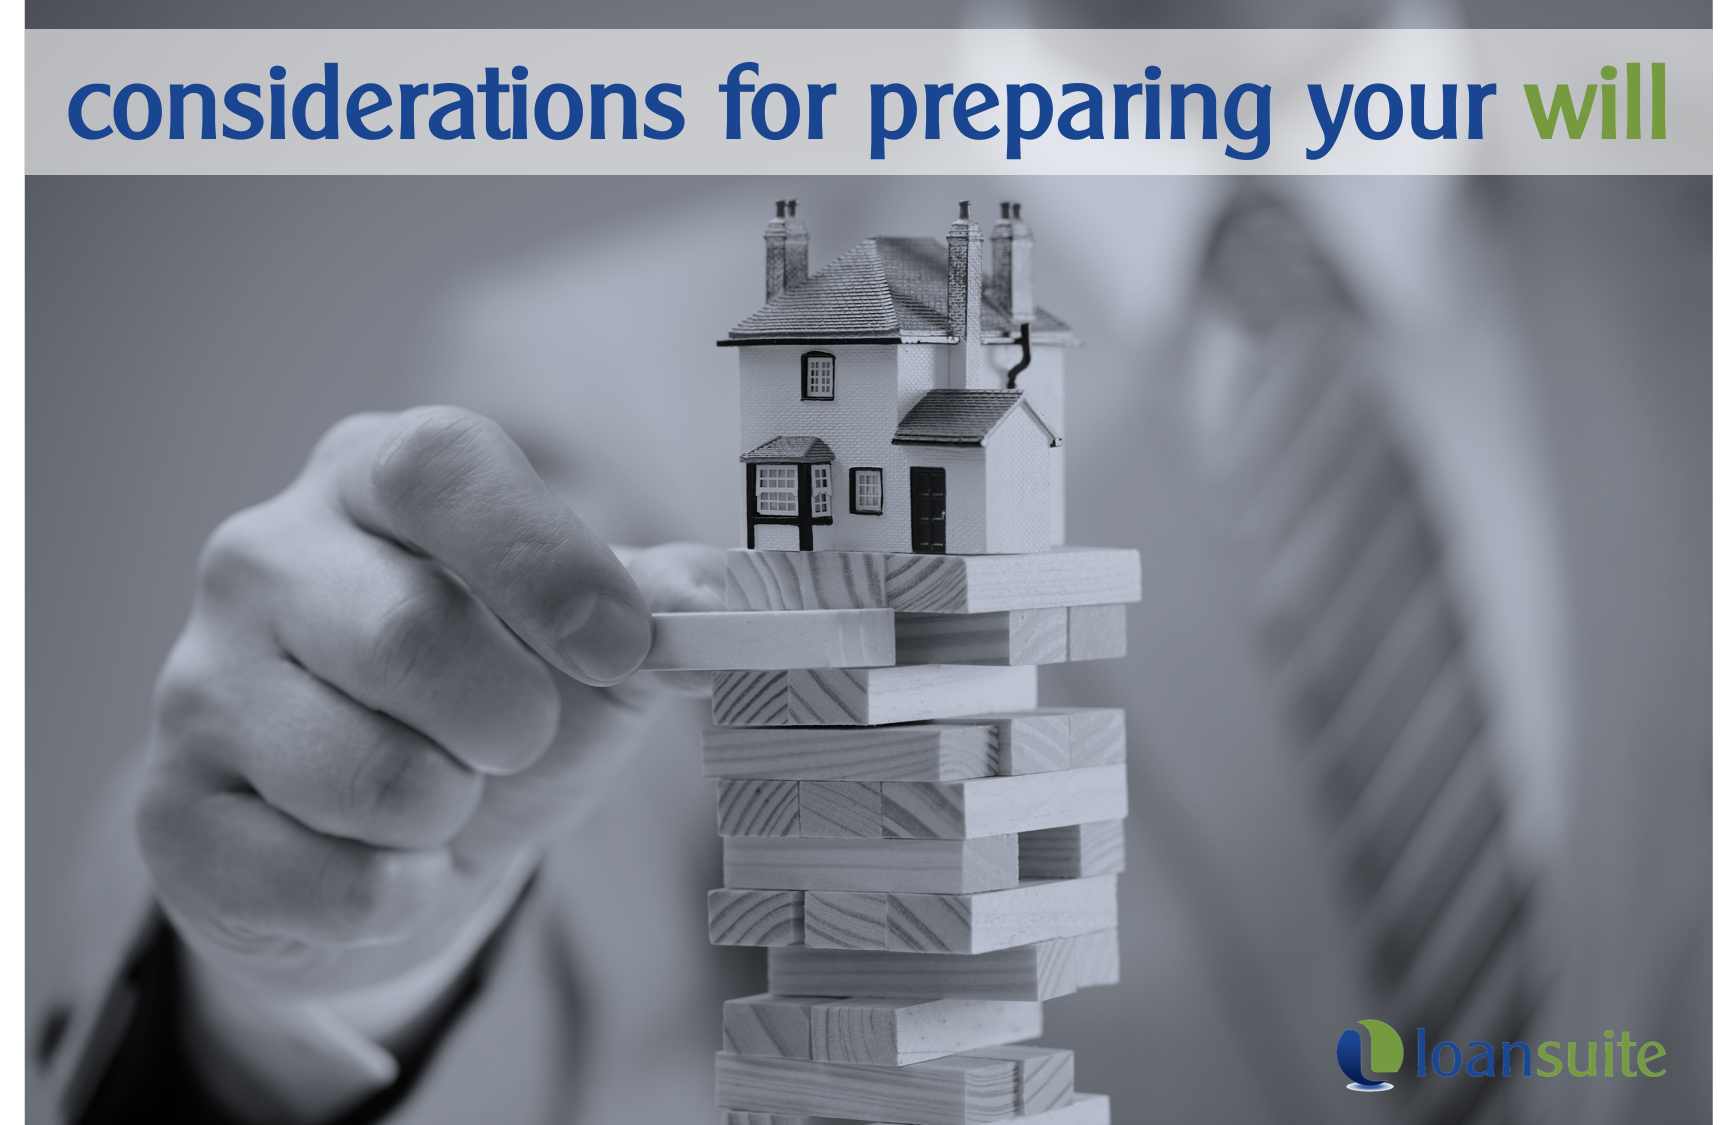 What To Consider When Preparing Your Will - Loansuite - Mortgage Brokers